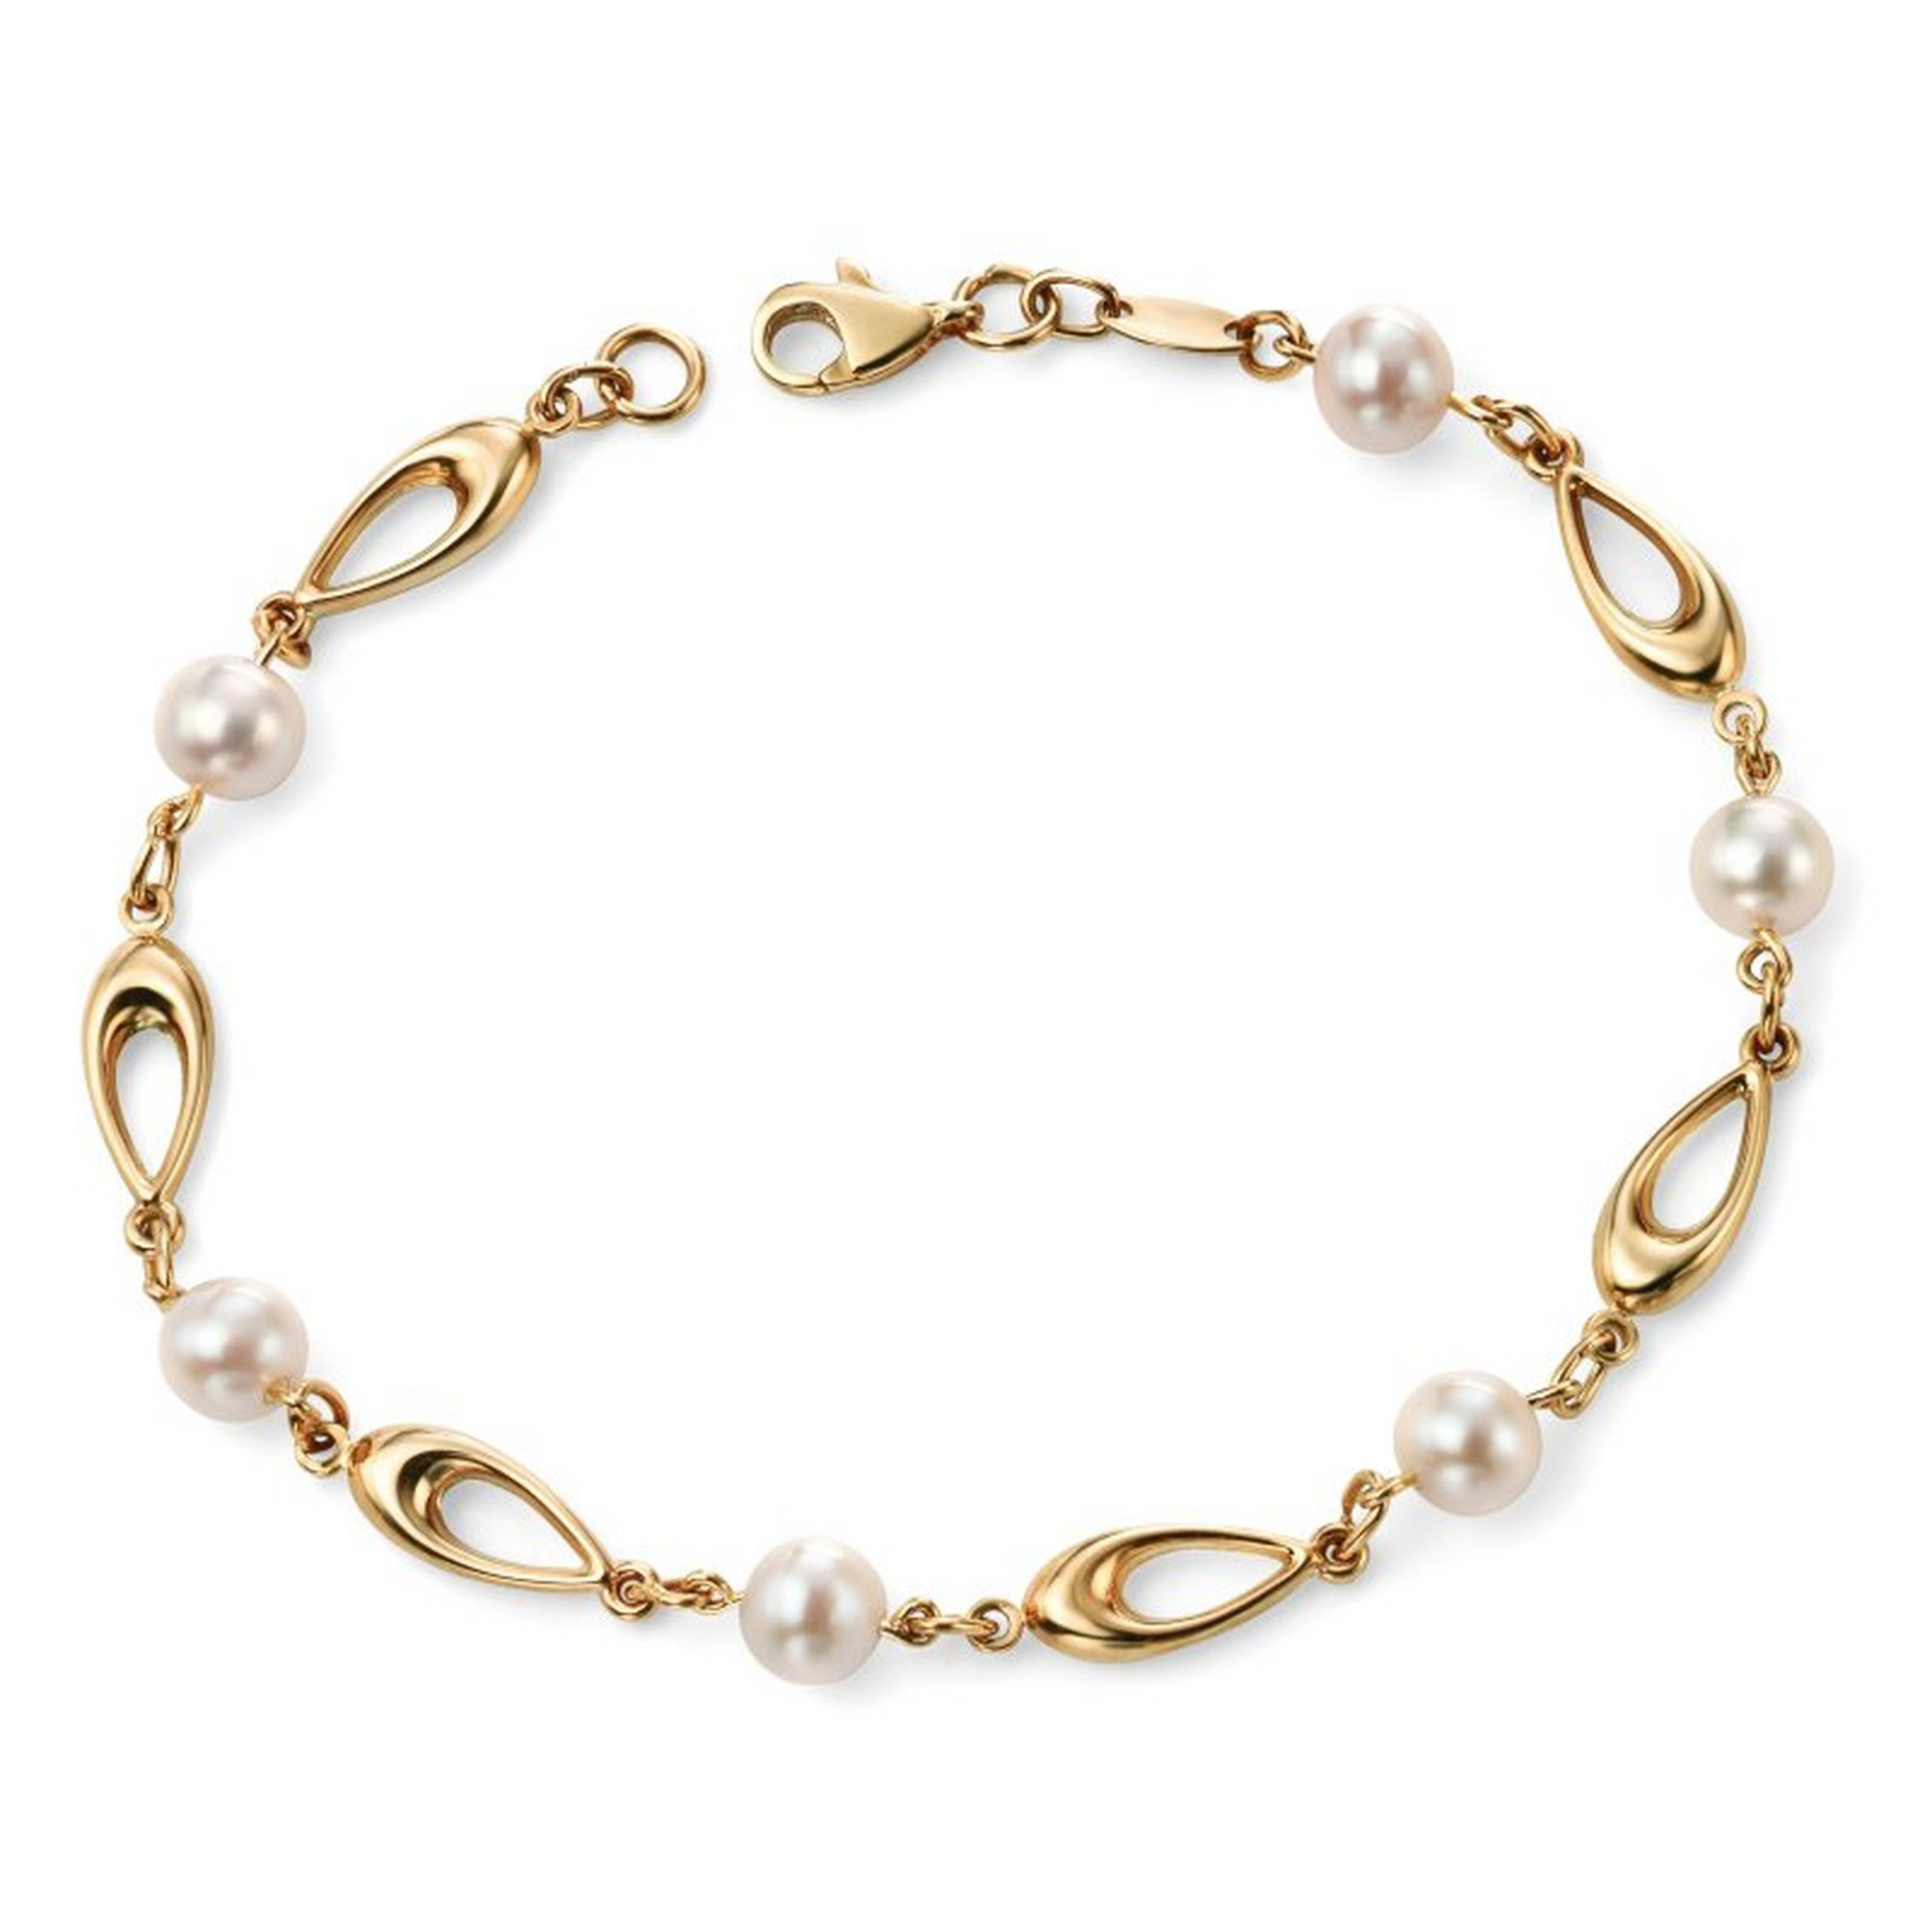 Image of Elements 9ct Yellow Gold Link Bracelet with White Freshwater Pearls